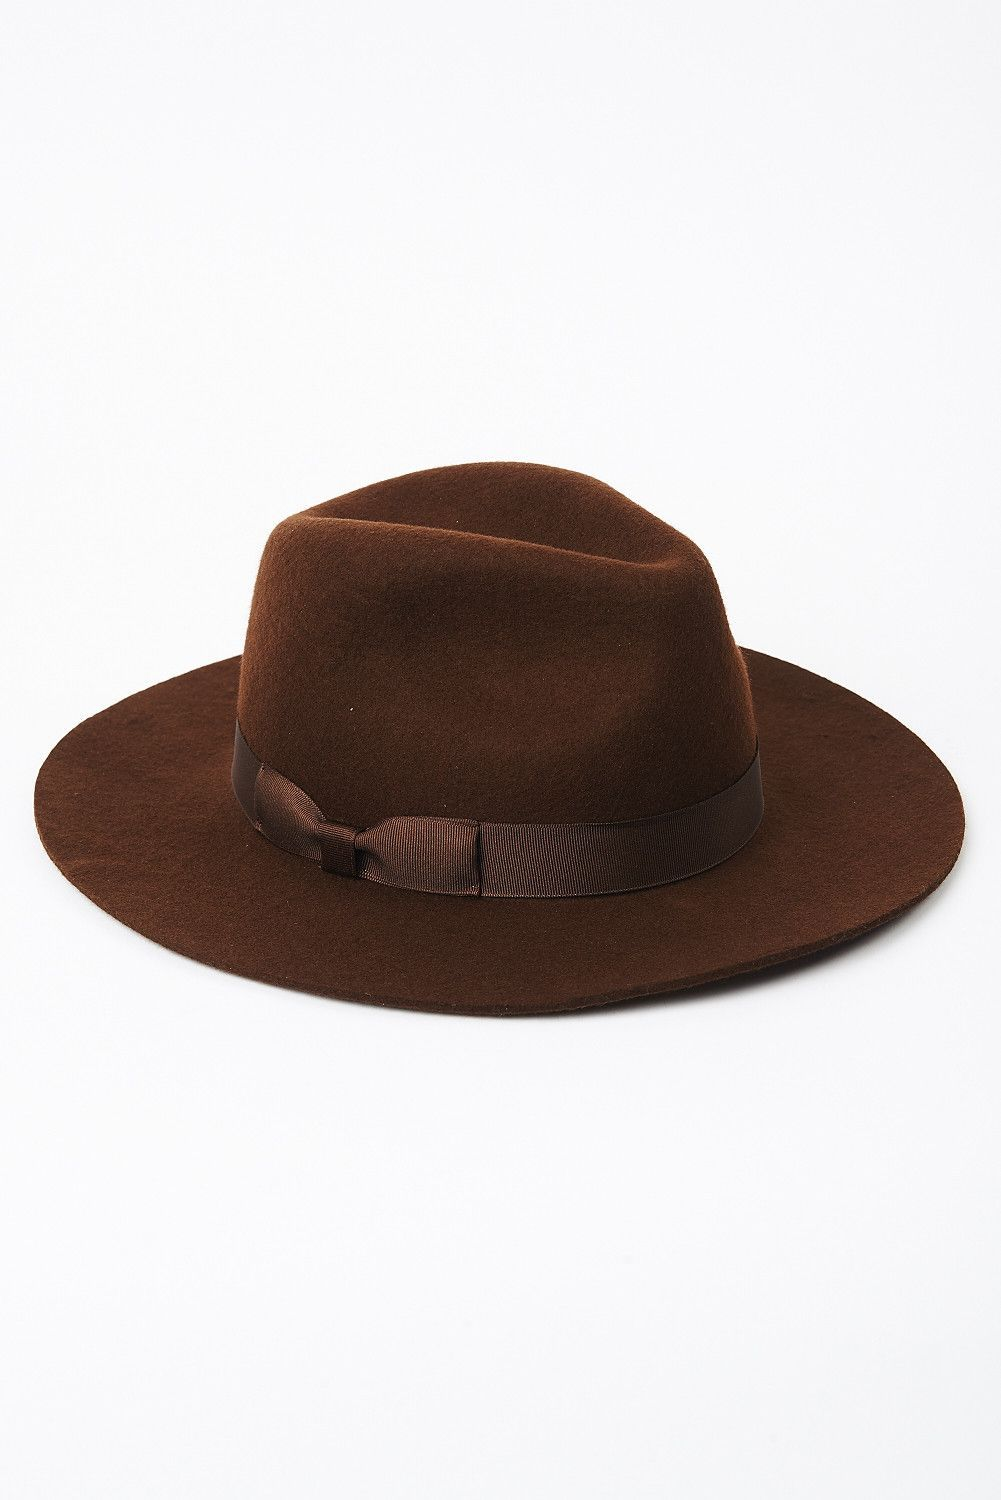 67d5efc072cca Chocolate brown structured soft wool fedora by Lack of Color ...